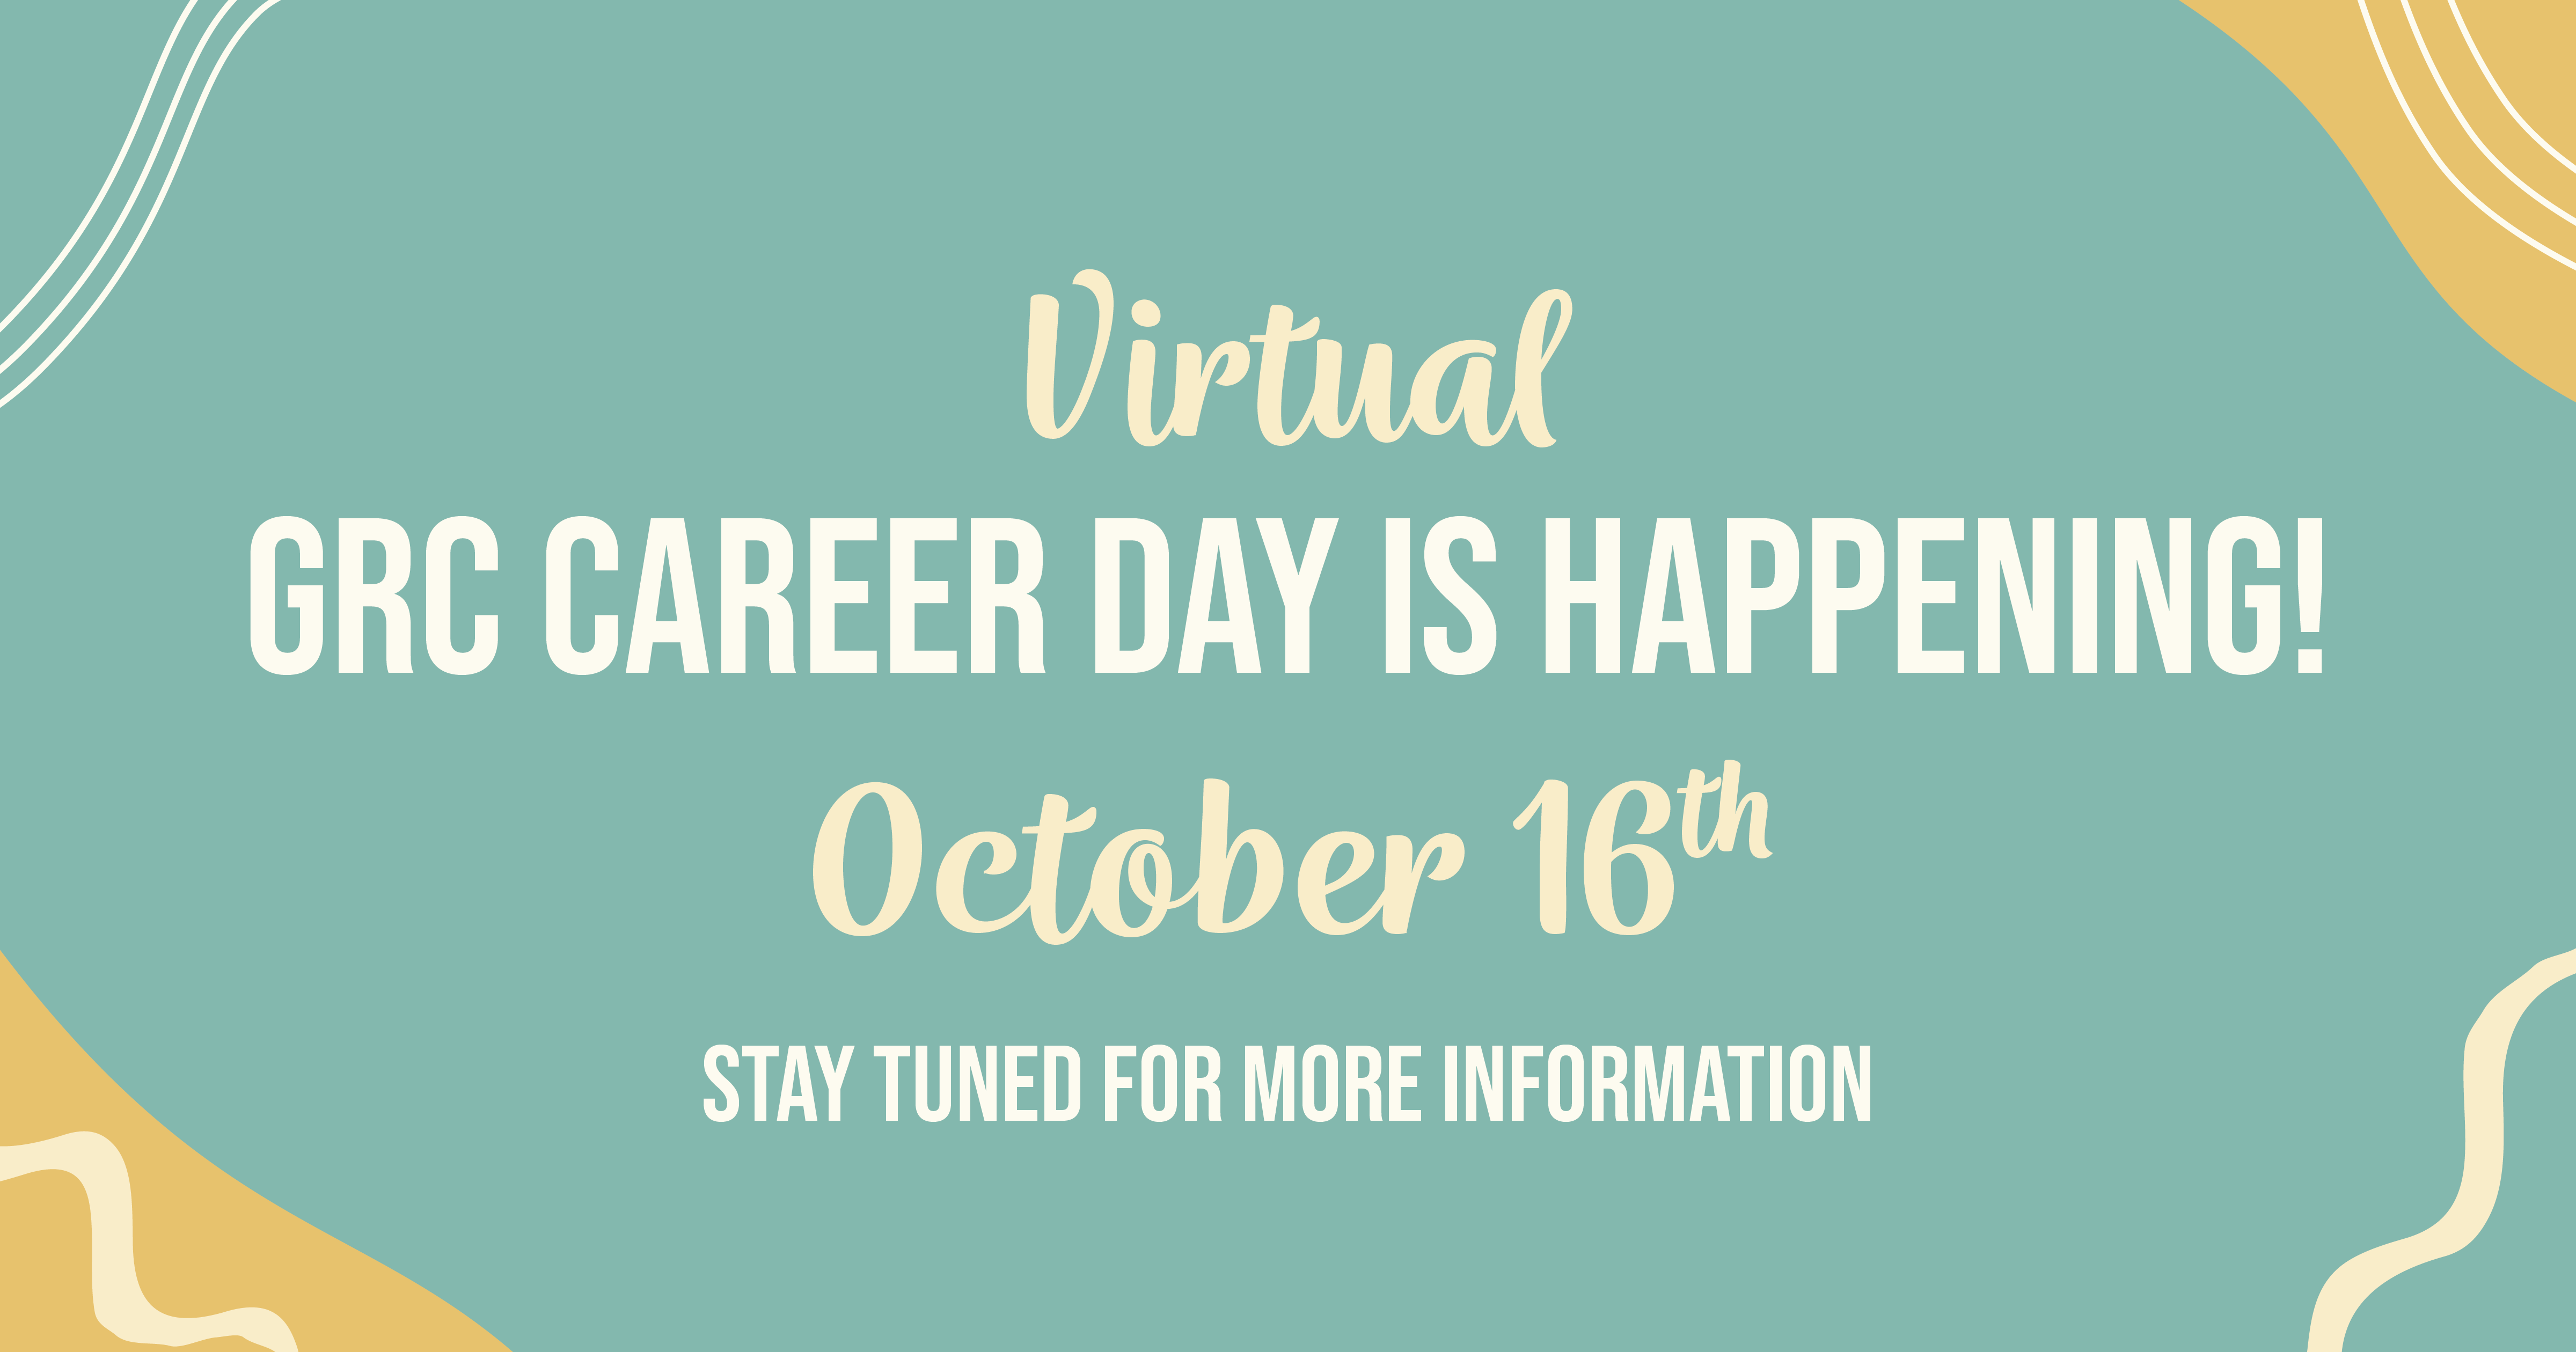 GrC Virtual Career Day, Graphic Communication Career Fair Registration